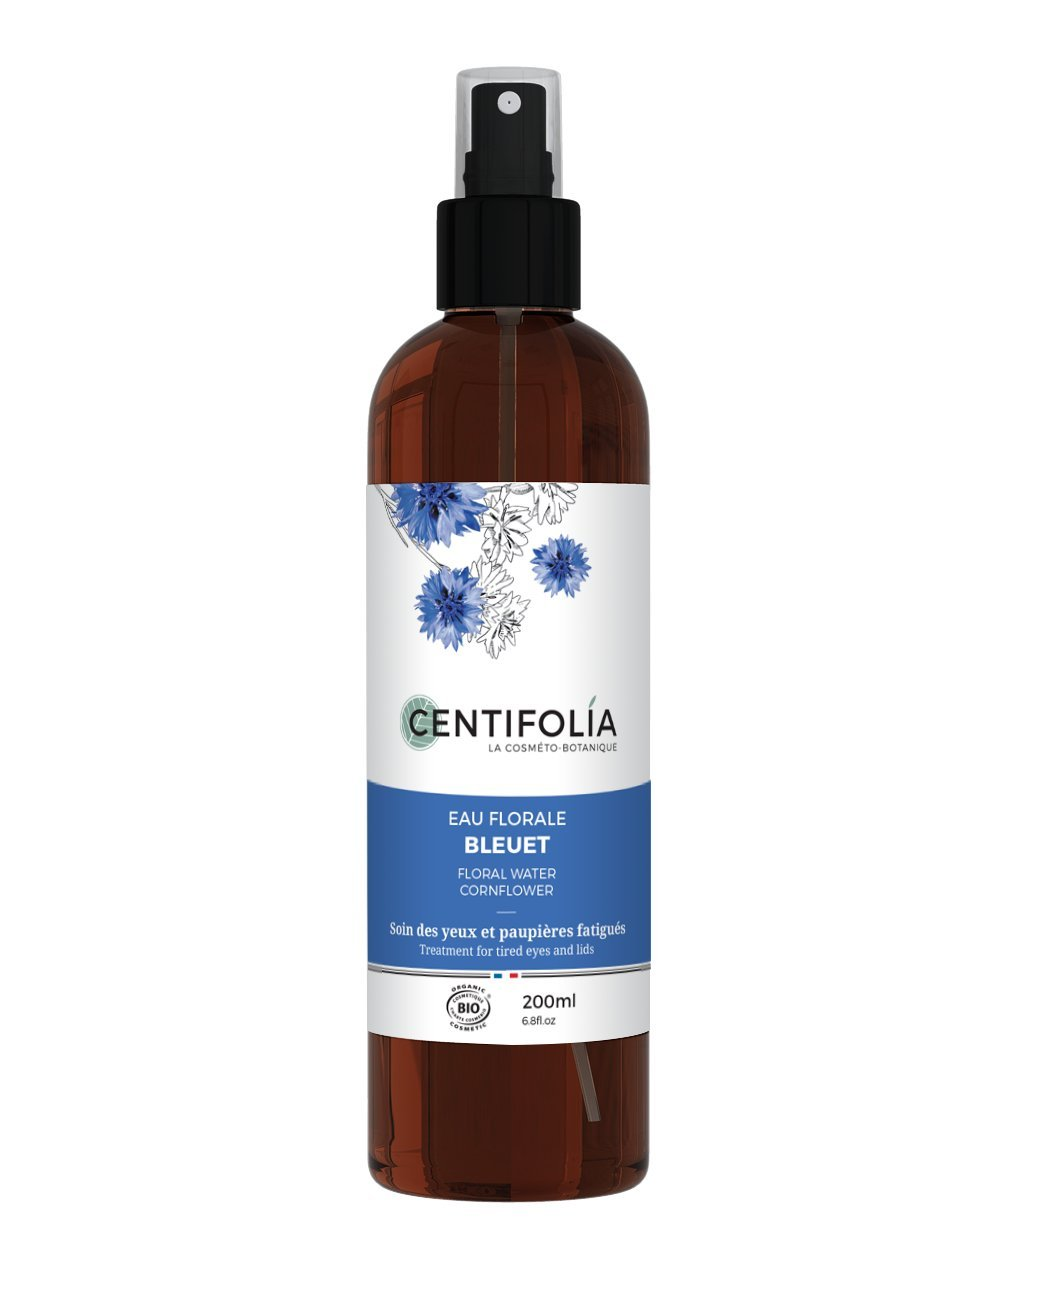 CENTIFOLIA - Cornflower Floral Water - Soothing care for Eyes and Eyelids - Also suitable for sensitive eyes - Deflates and Lights up - Organic Certified - 200 ml Yumi Bio Shop